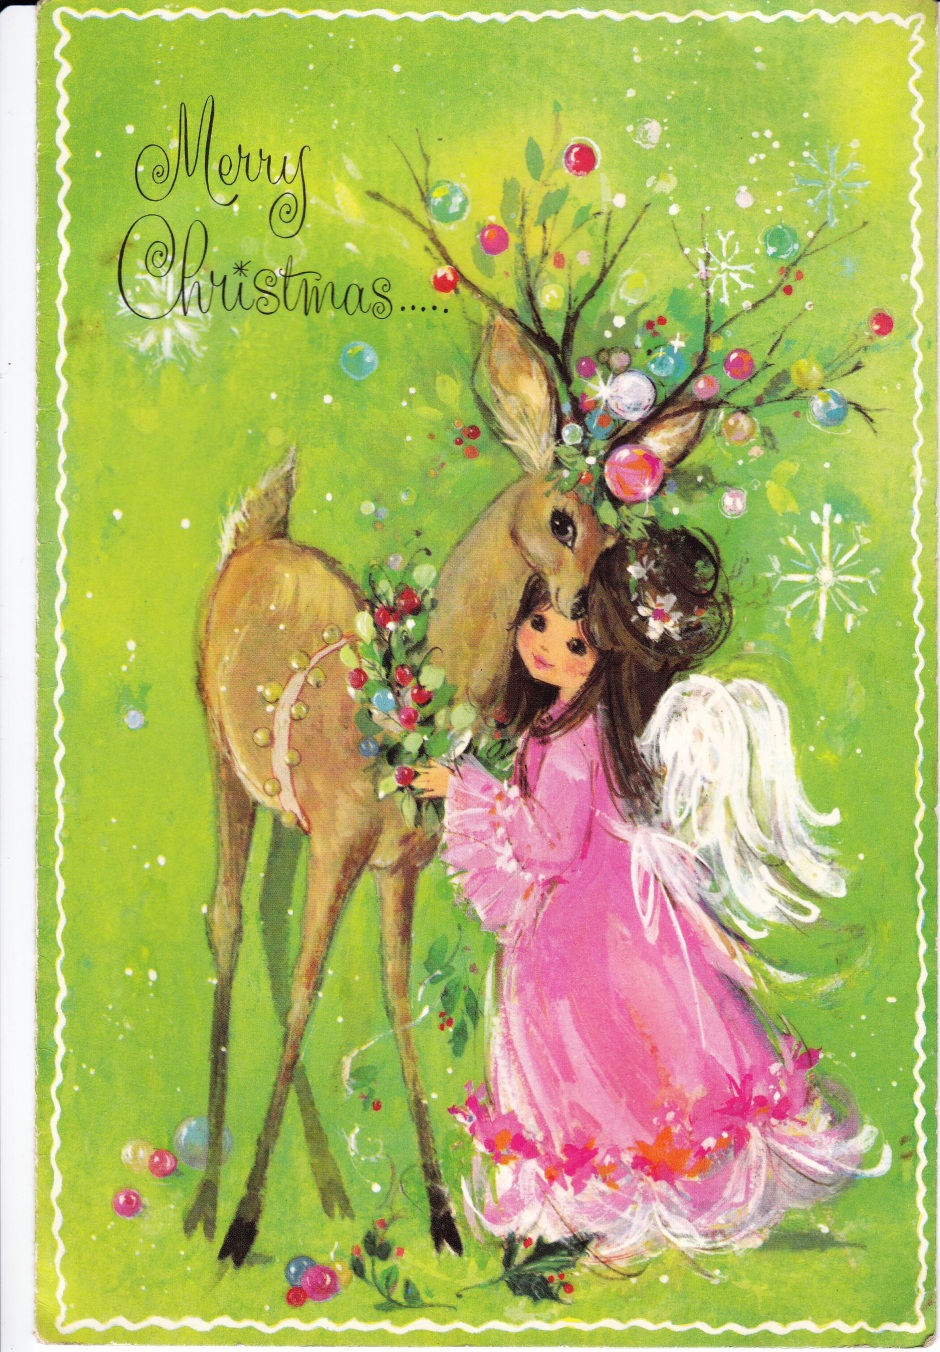 Vintage Christmas Sands Greeting card, Merry Christmas, vintage cards, card design, Is It Art?, Maryann Adair,